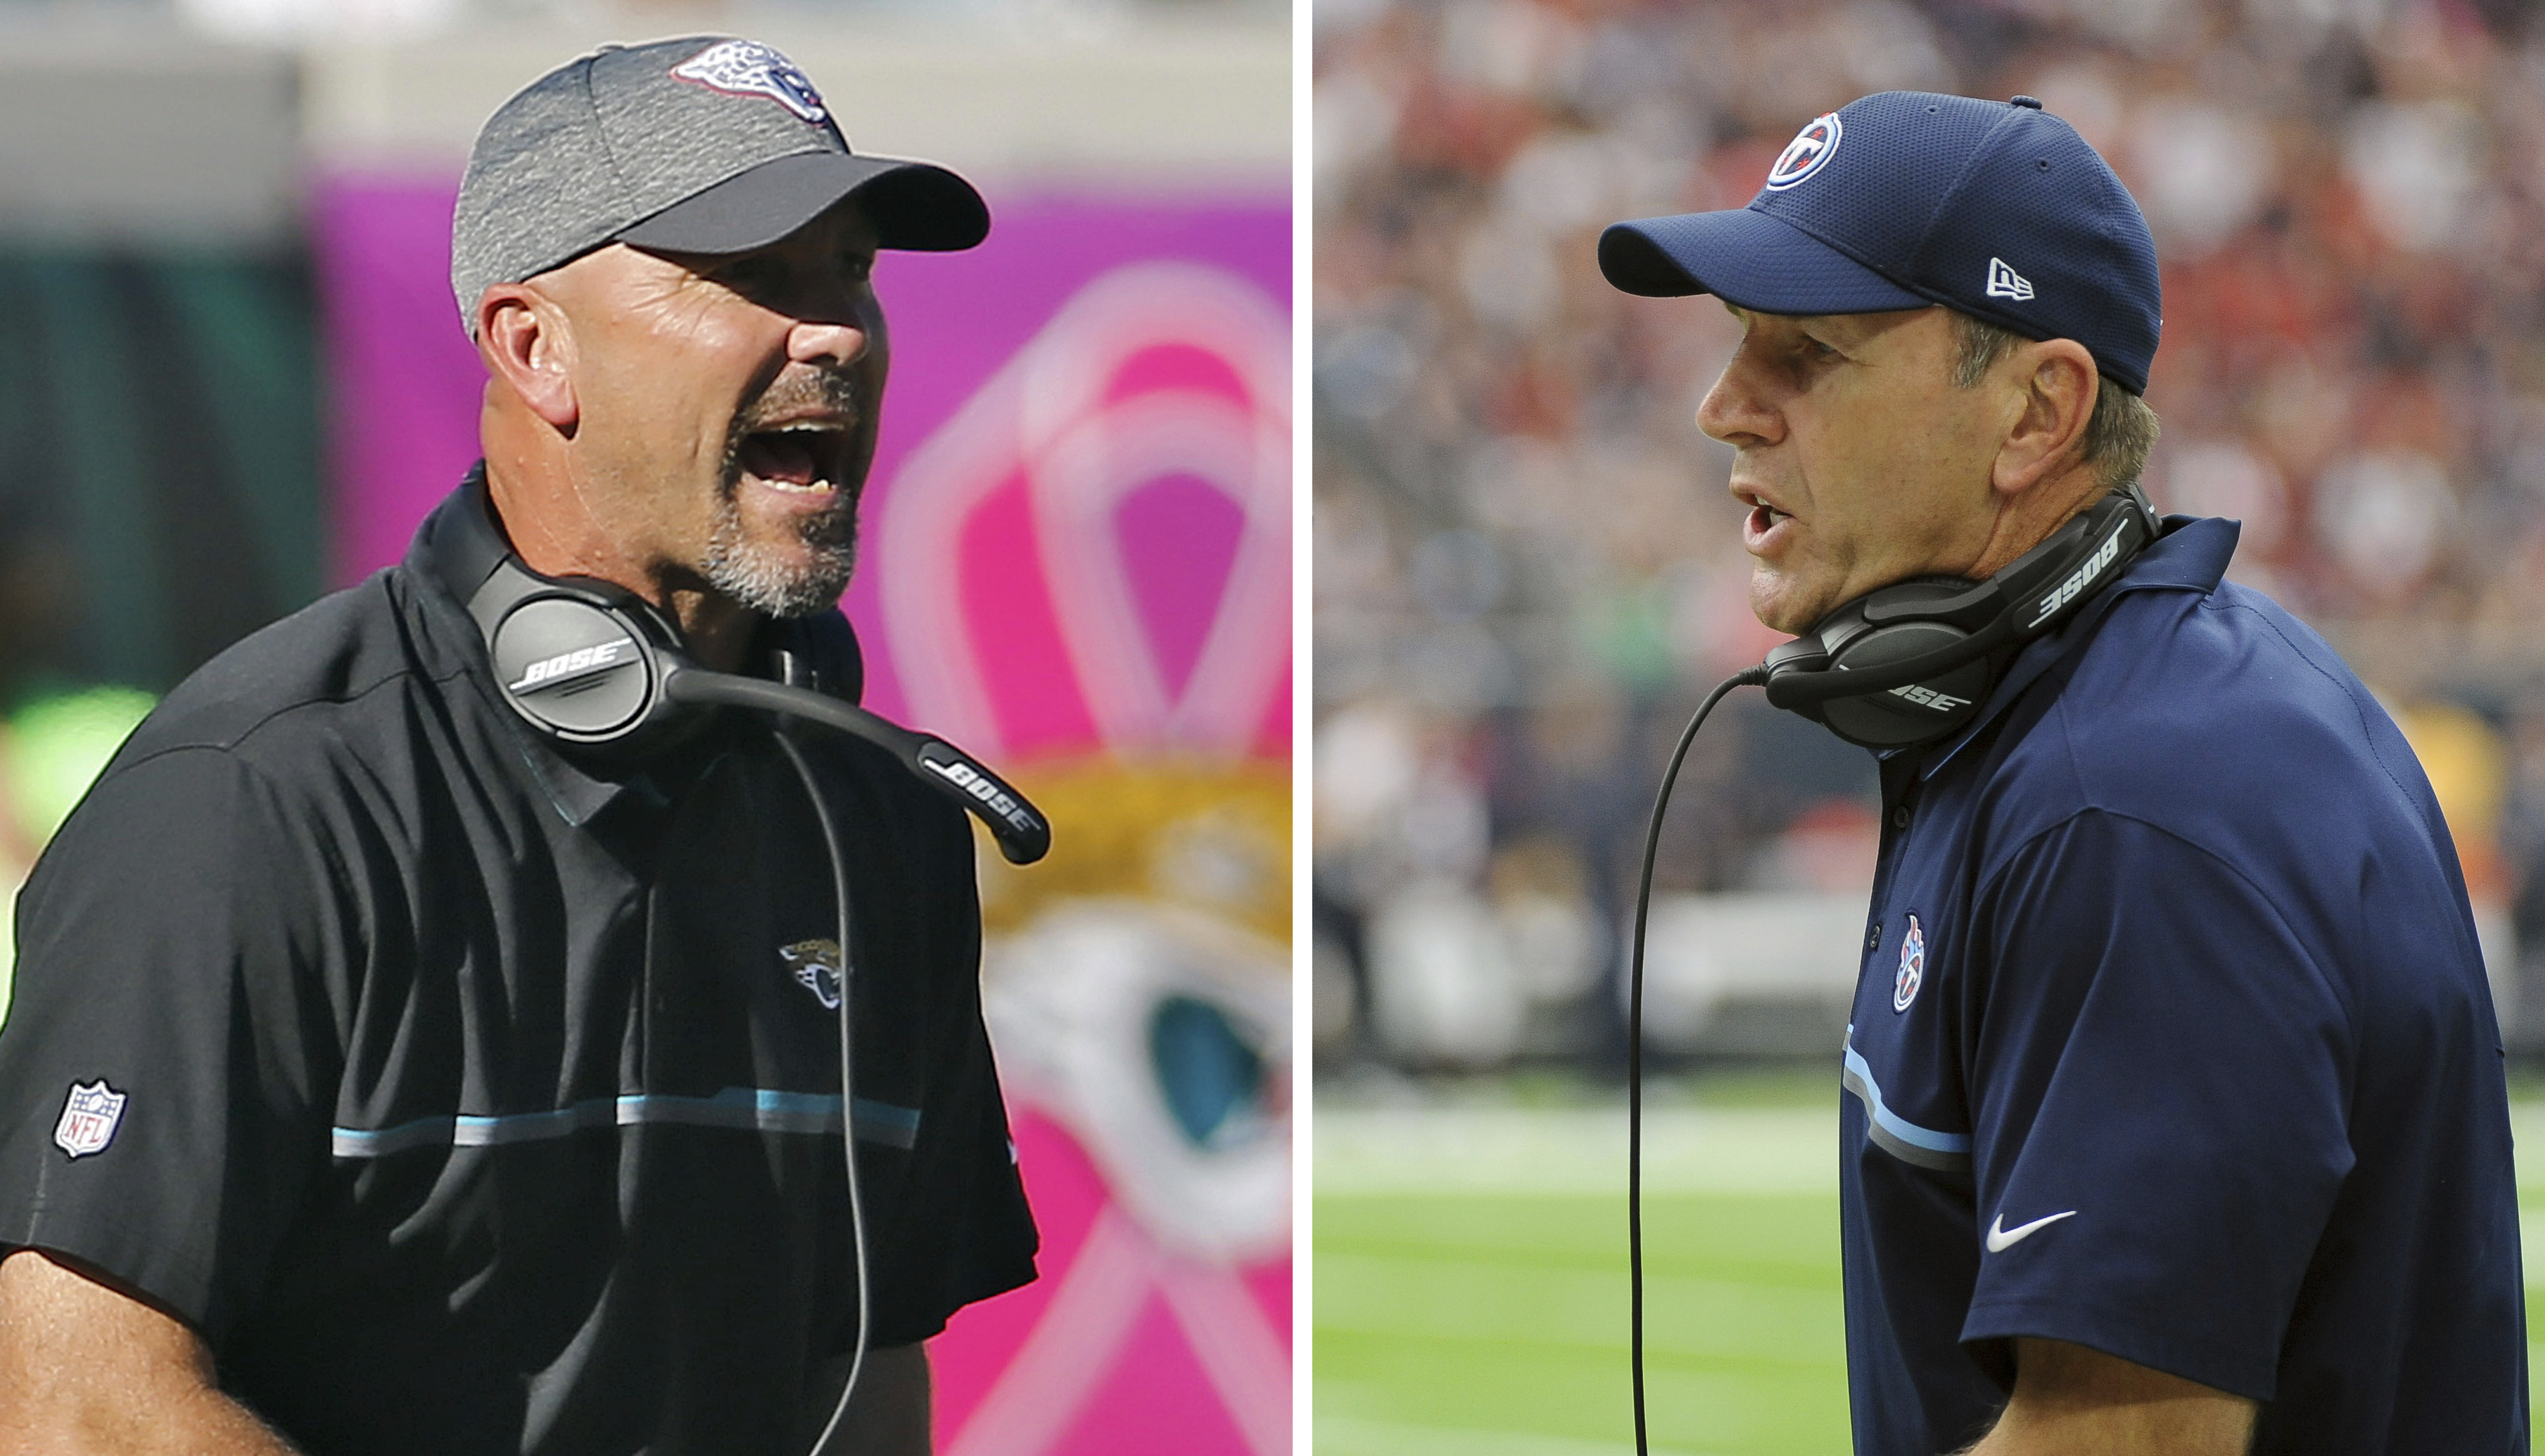 FILE - At left, in an Oct. 23, 2016, file photo, Jacksonville Jaguars head coach Gus Bradley shouts during the fourth quarter of an NFL football game, in Jacksonville, Fla. At right, in an Oct. 2, 2016, file photo, Tennessee Titans head coach Mike Mularke